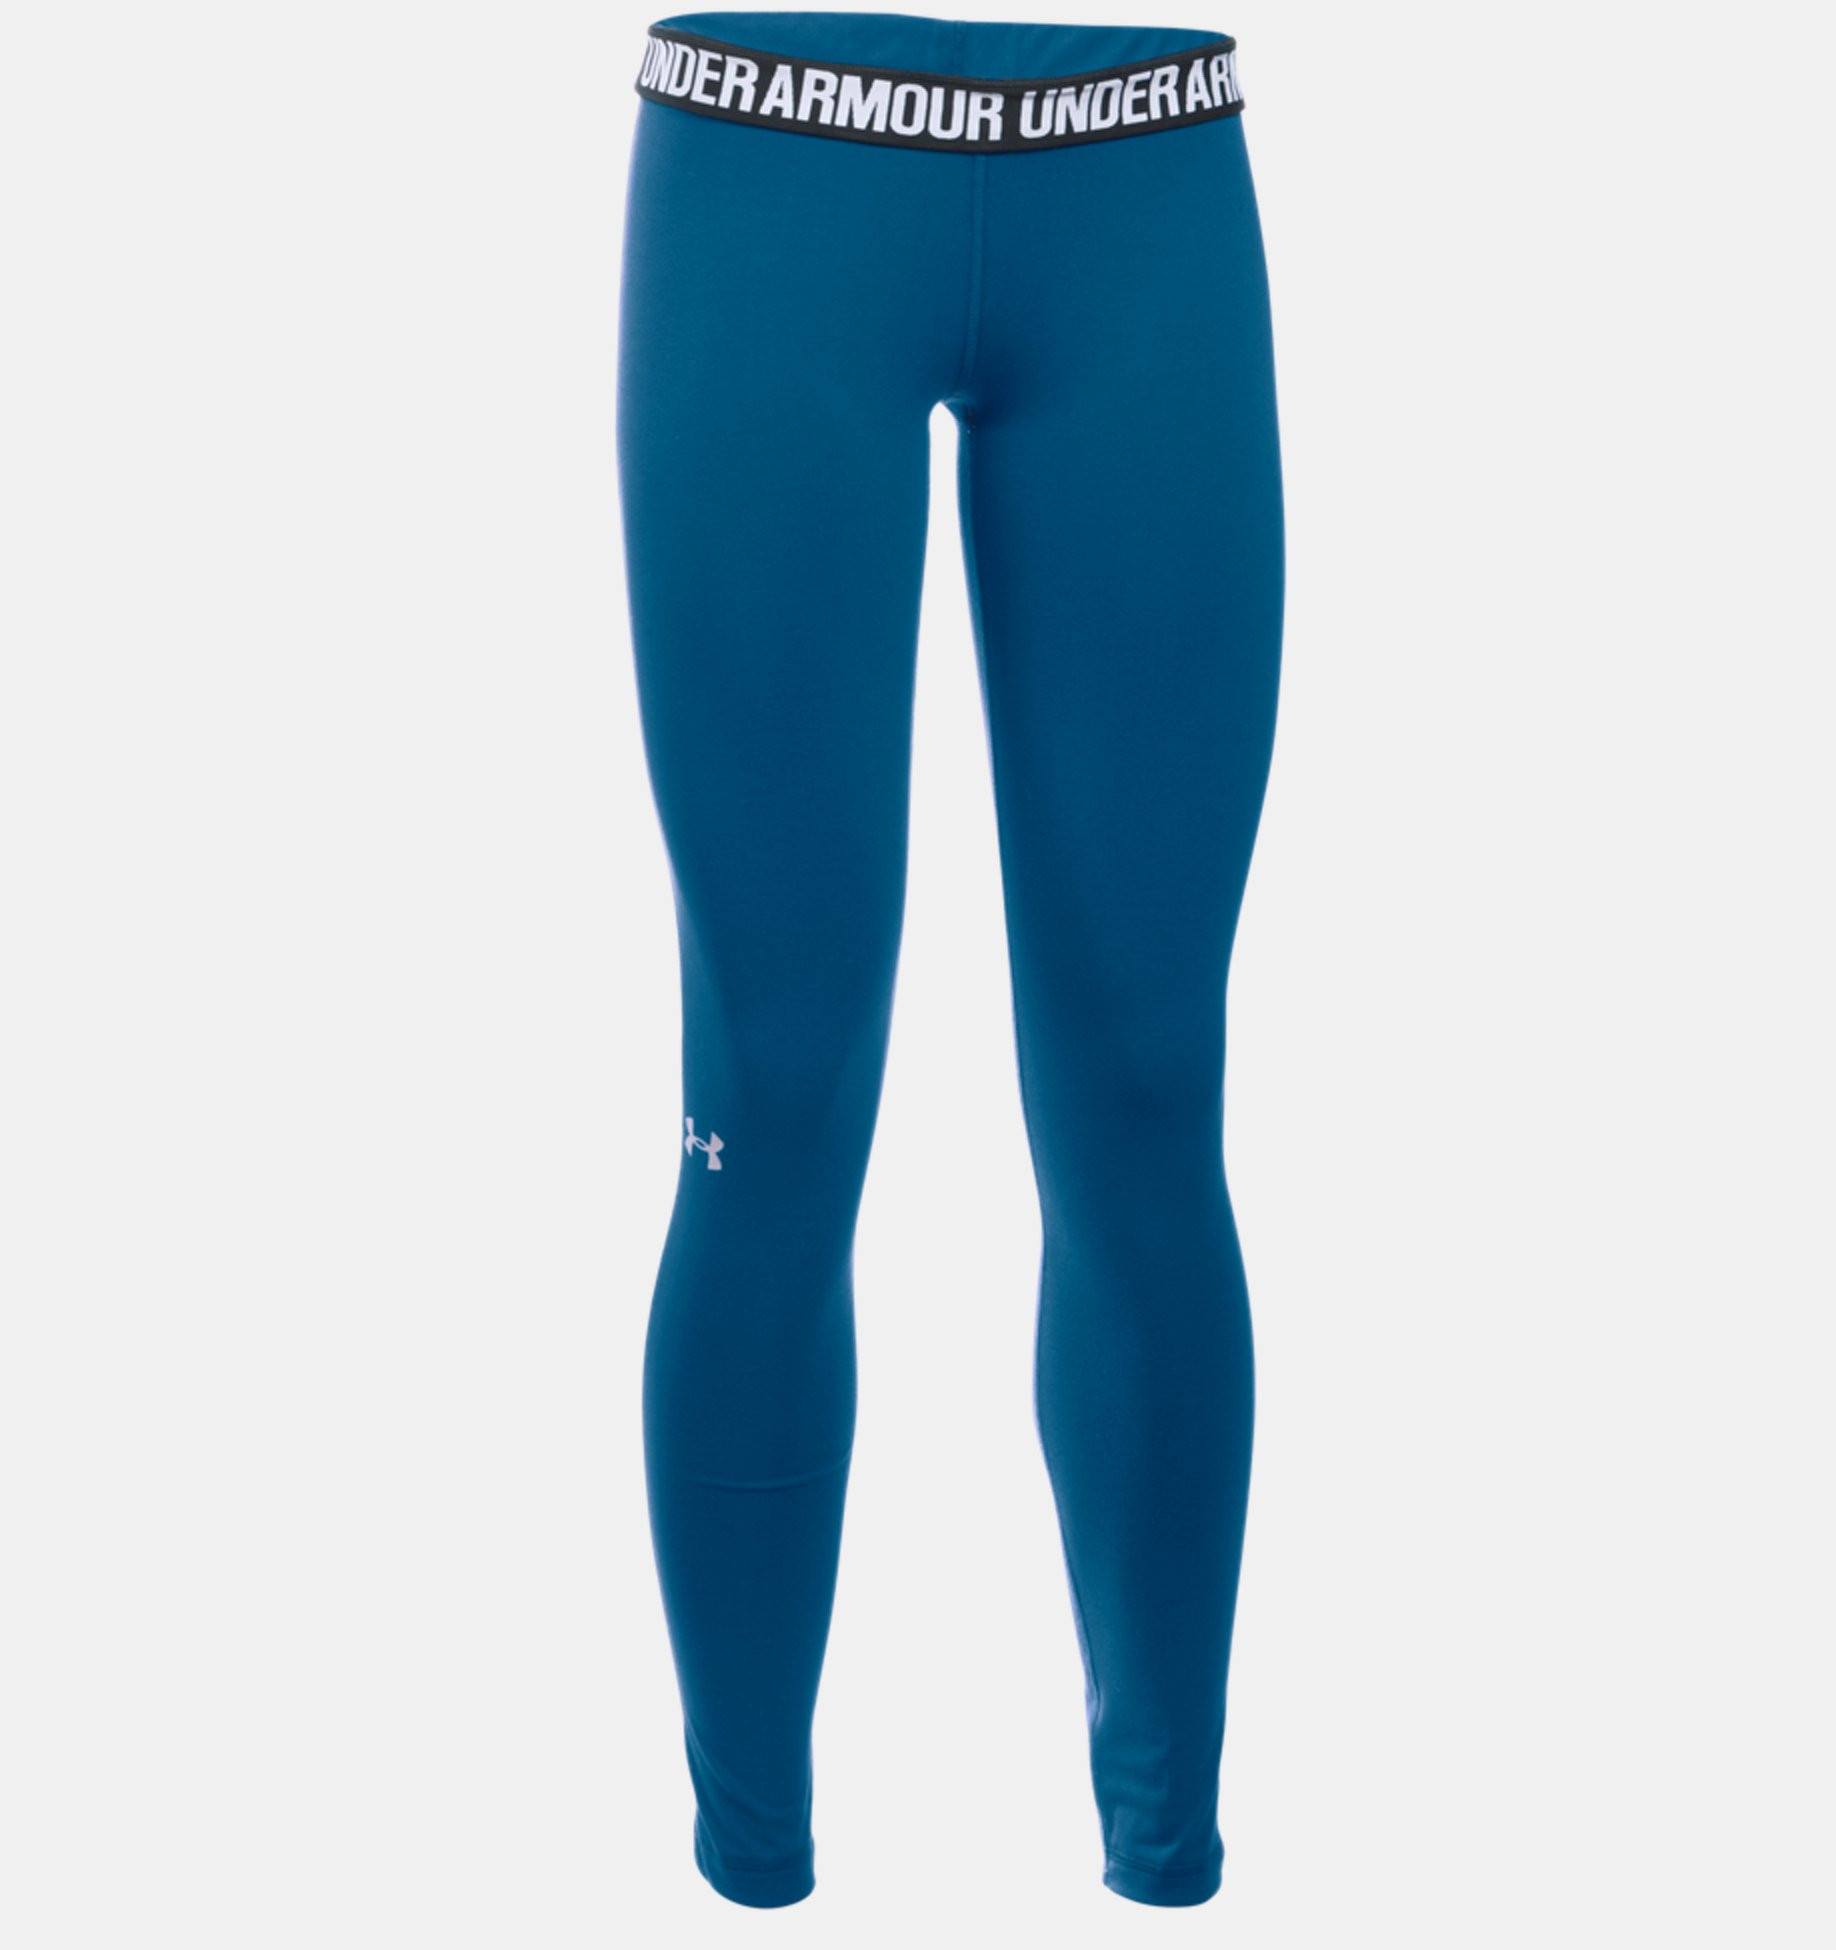 28129cbe Under Armour Favorite Legging Heron Under Armour Favorite Legging Heron ...